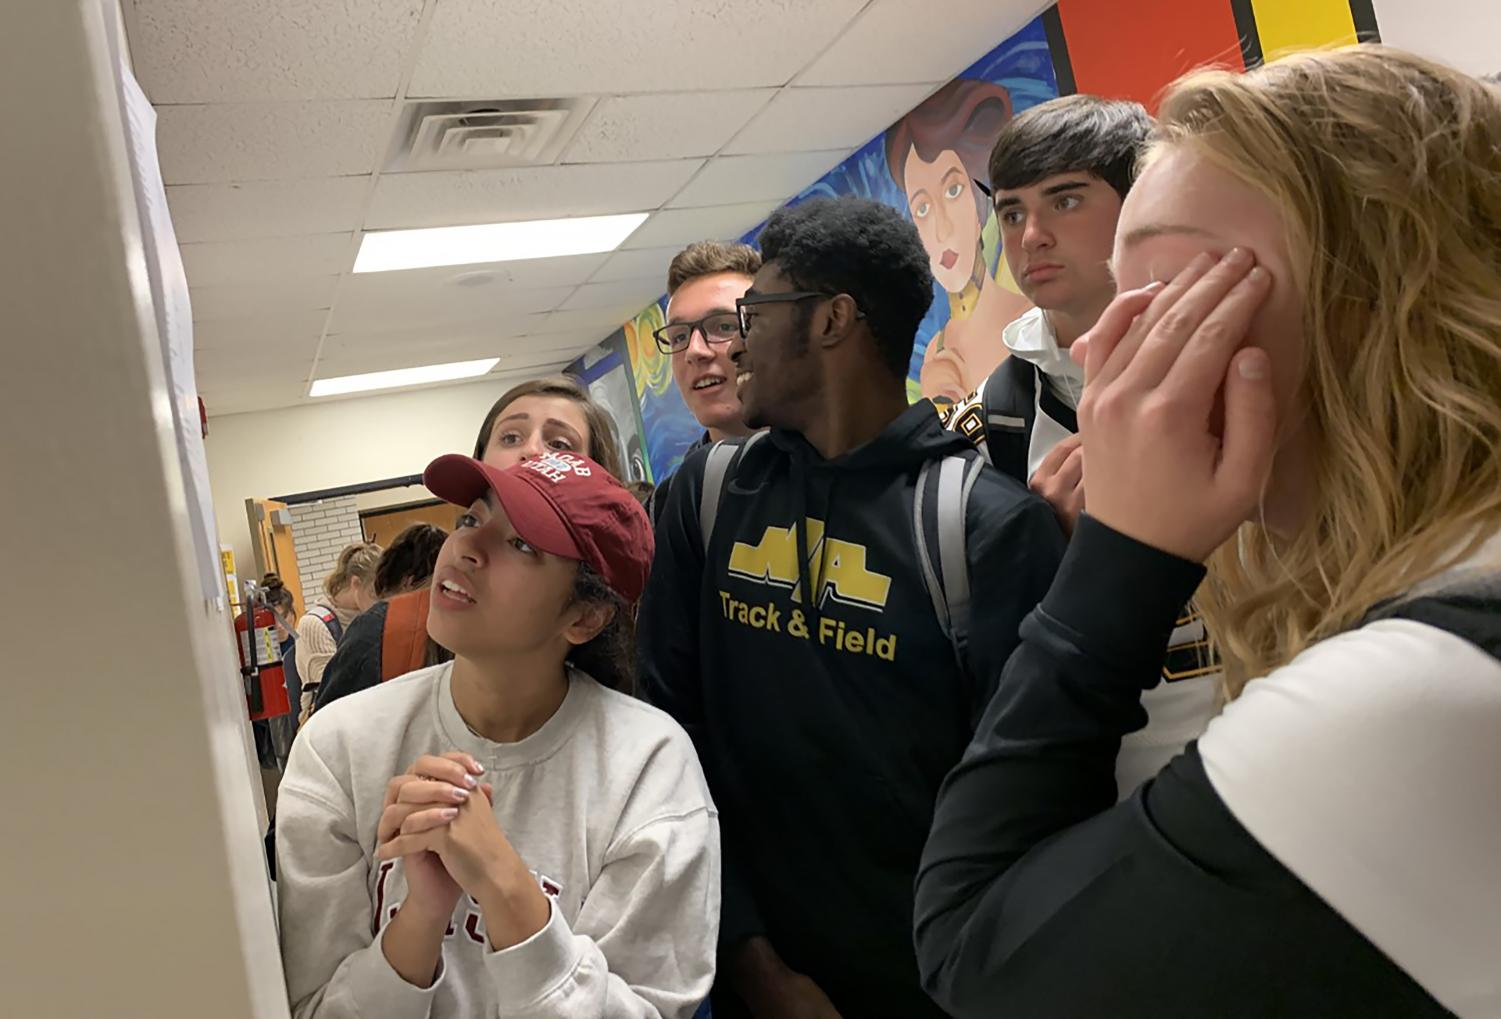 (L-R) Ava DiMartino, Emma Sula, Dylan Noker, Henry Mokube, Josh Truesdell, and Sarah Johns anxiously scan the spring musical callback list posted on September 27th.